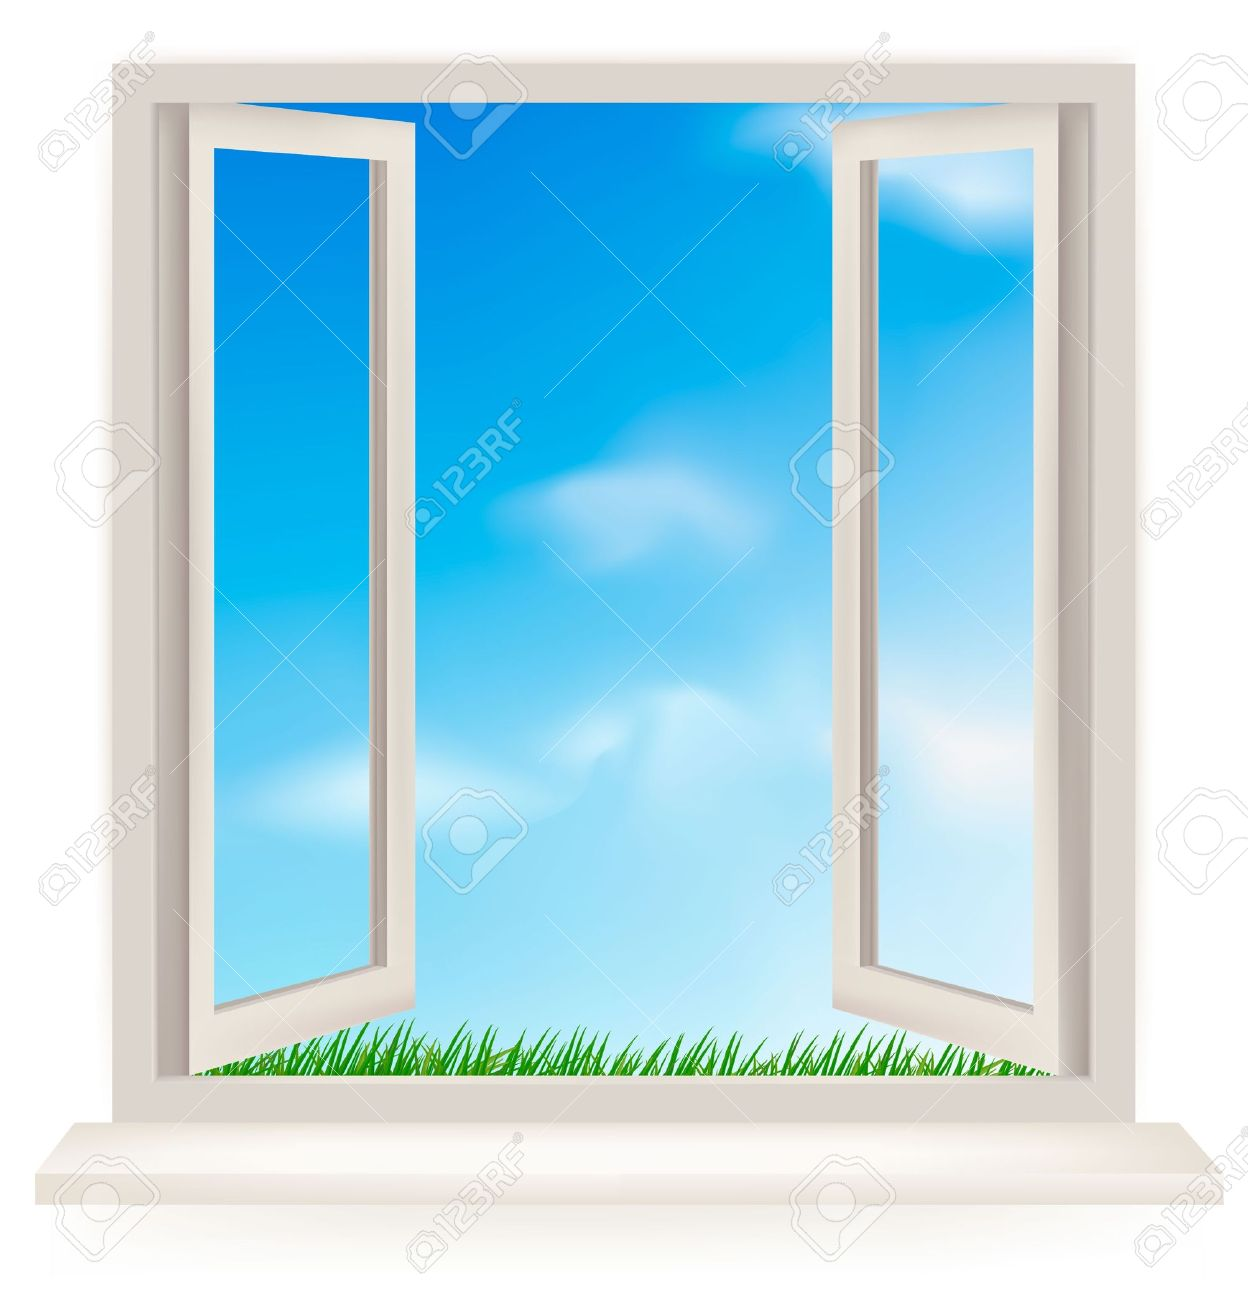 Window clipart night window Art images clipart clip clipart